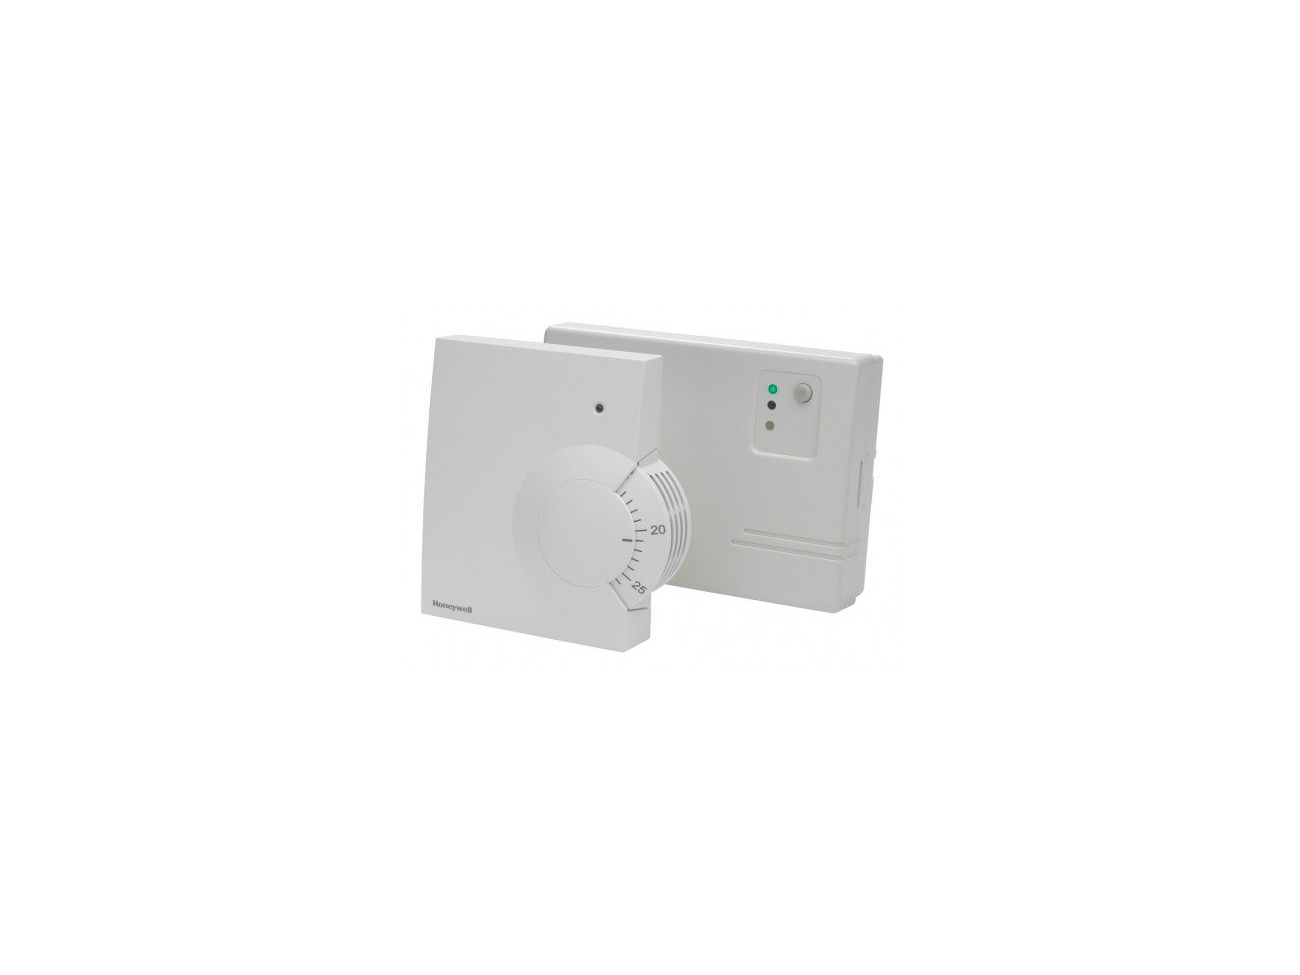 Buy Honeywell Y6630D1007 Battery Powered Wireless Room Thermostat